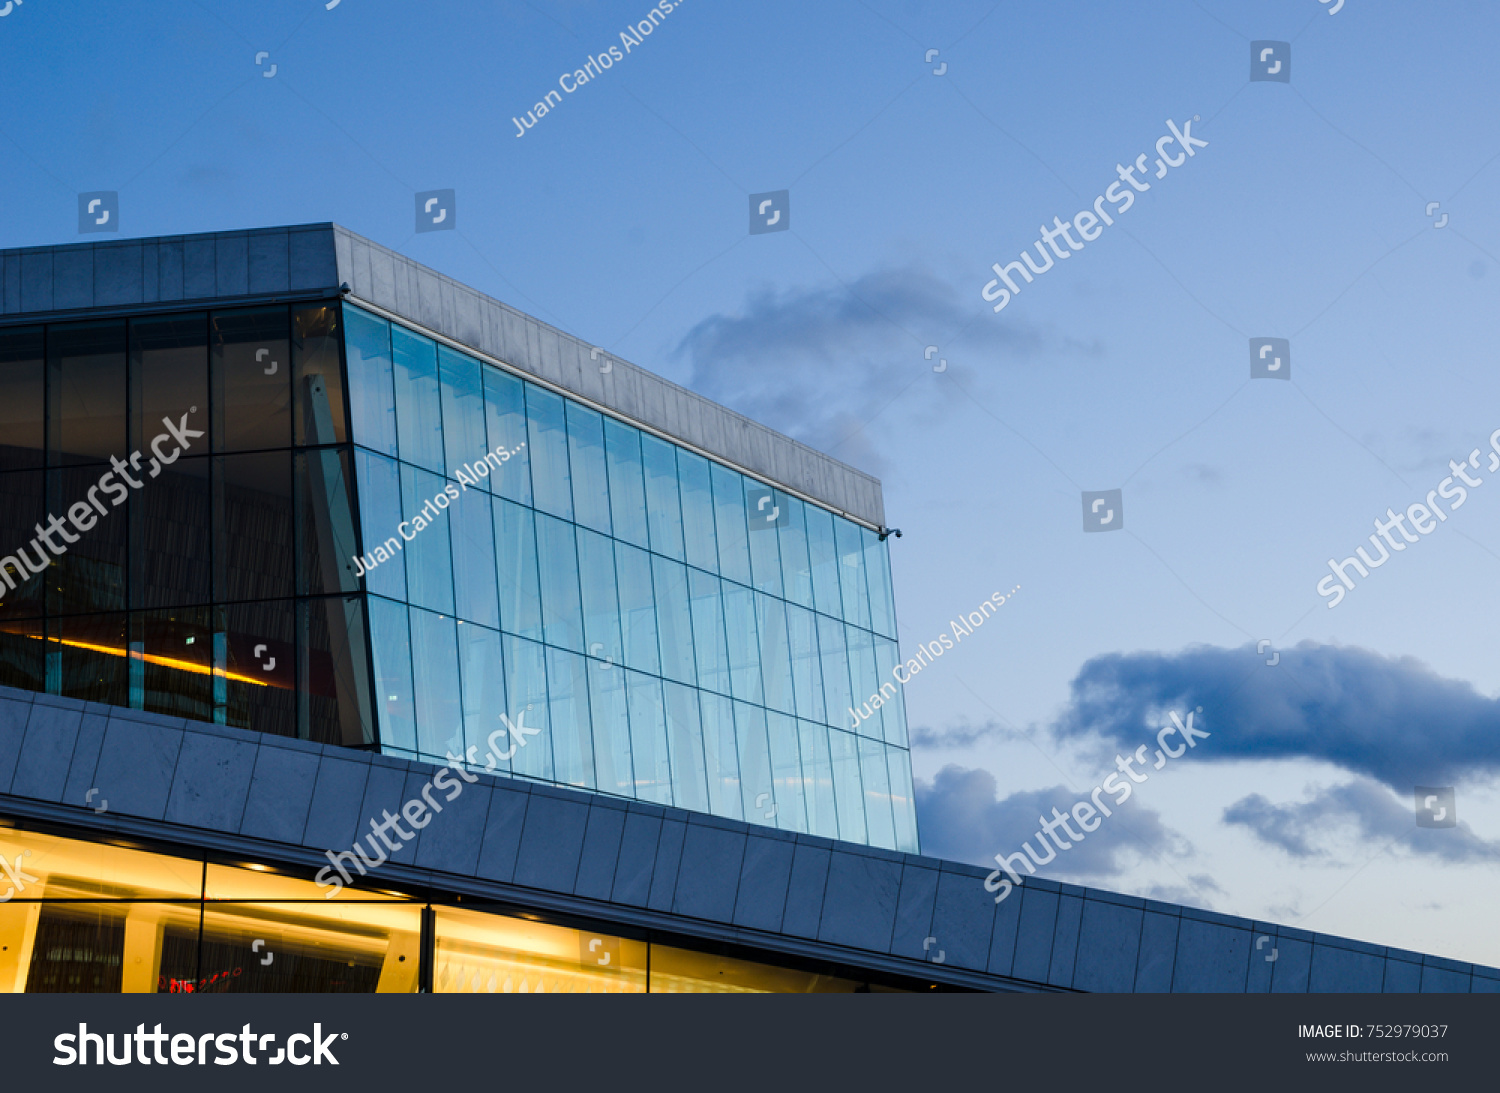 Charming Oslo Norway February 2015 Oslo Opera Stock Photo 752979037   Shutterstock Pictures